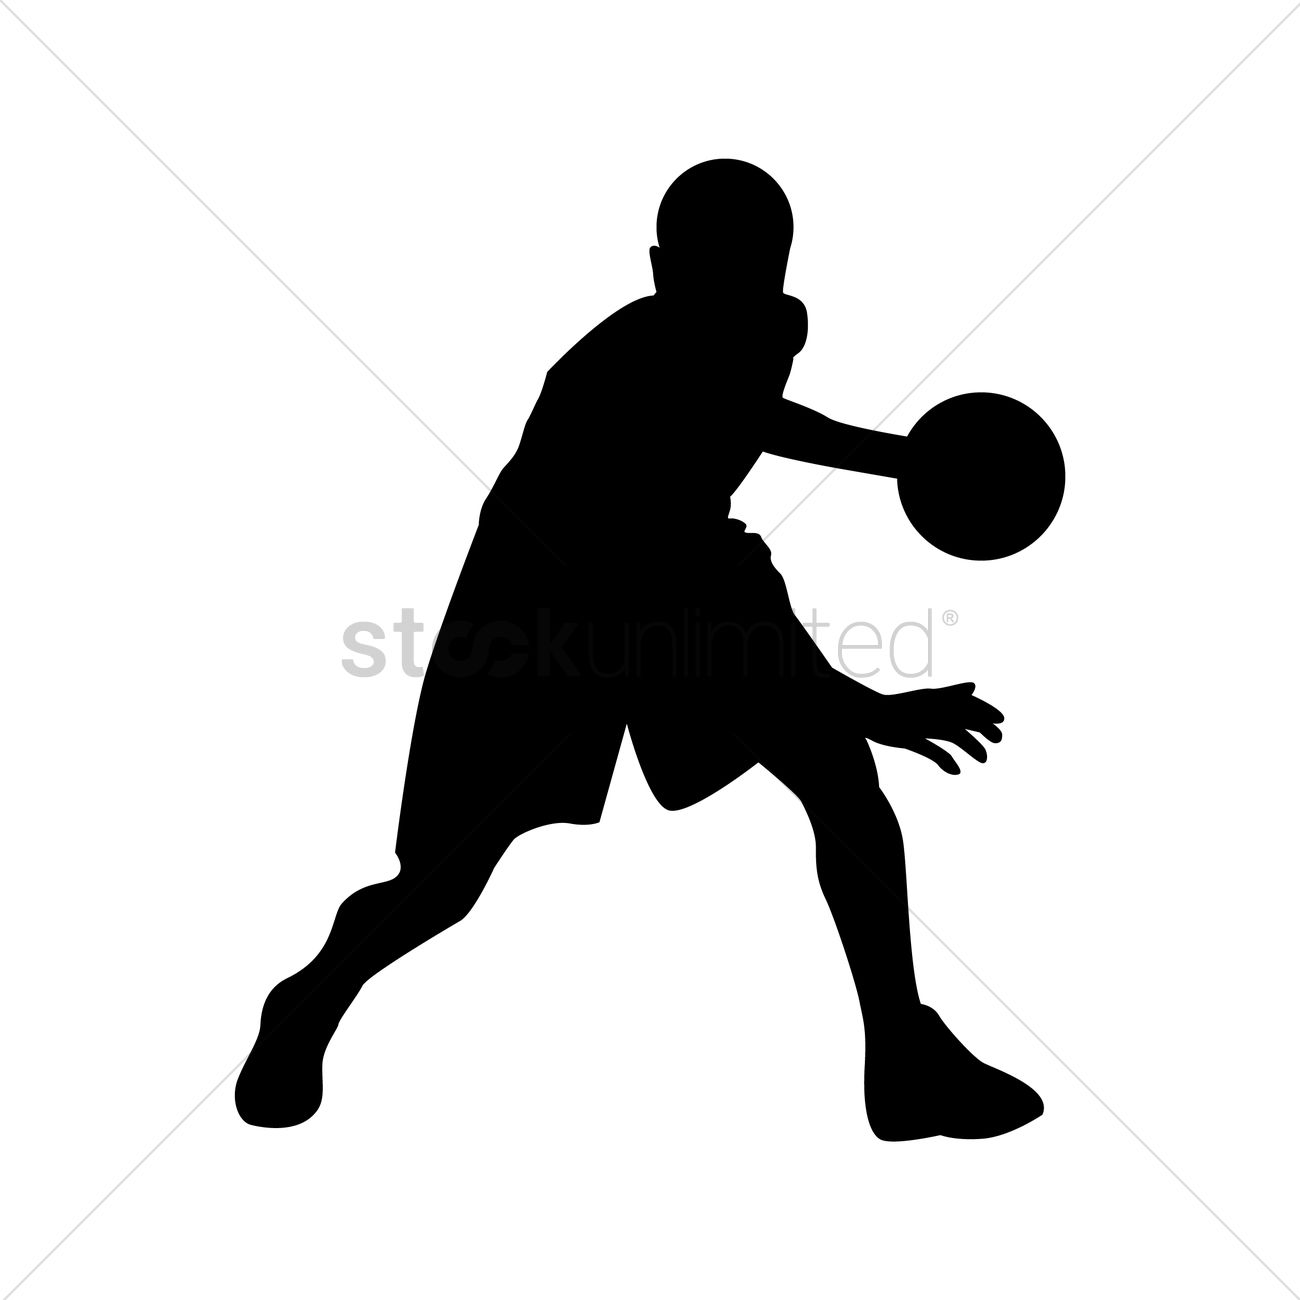 Silhouette at getdrawings com. Boys clipart basketball player